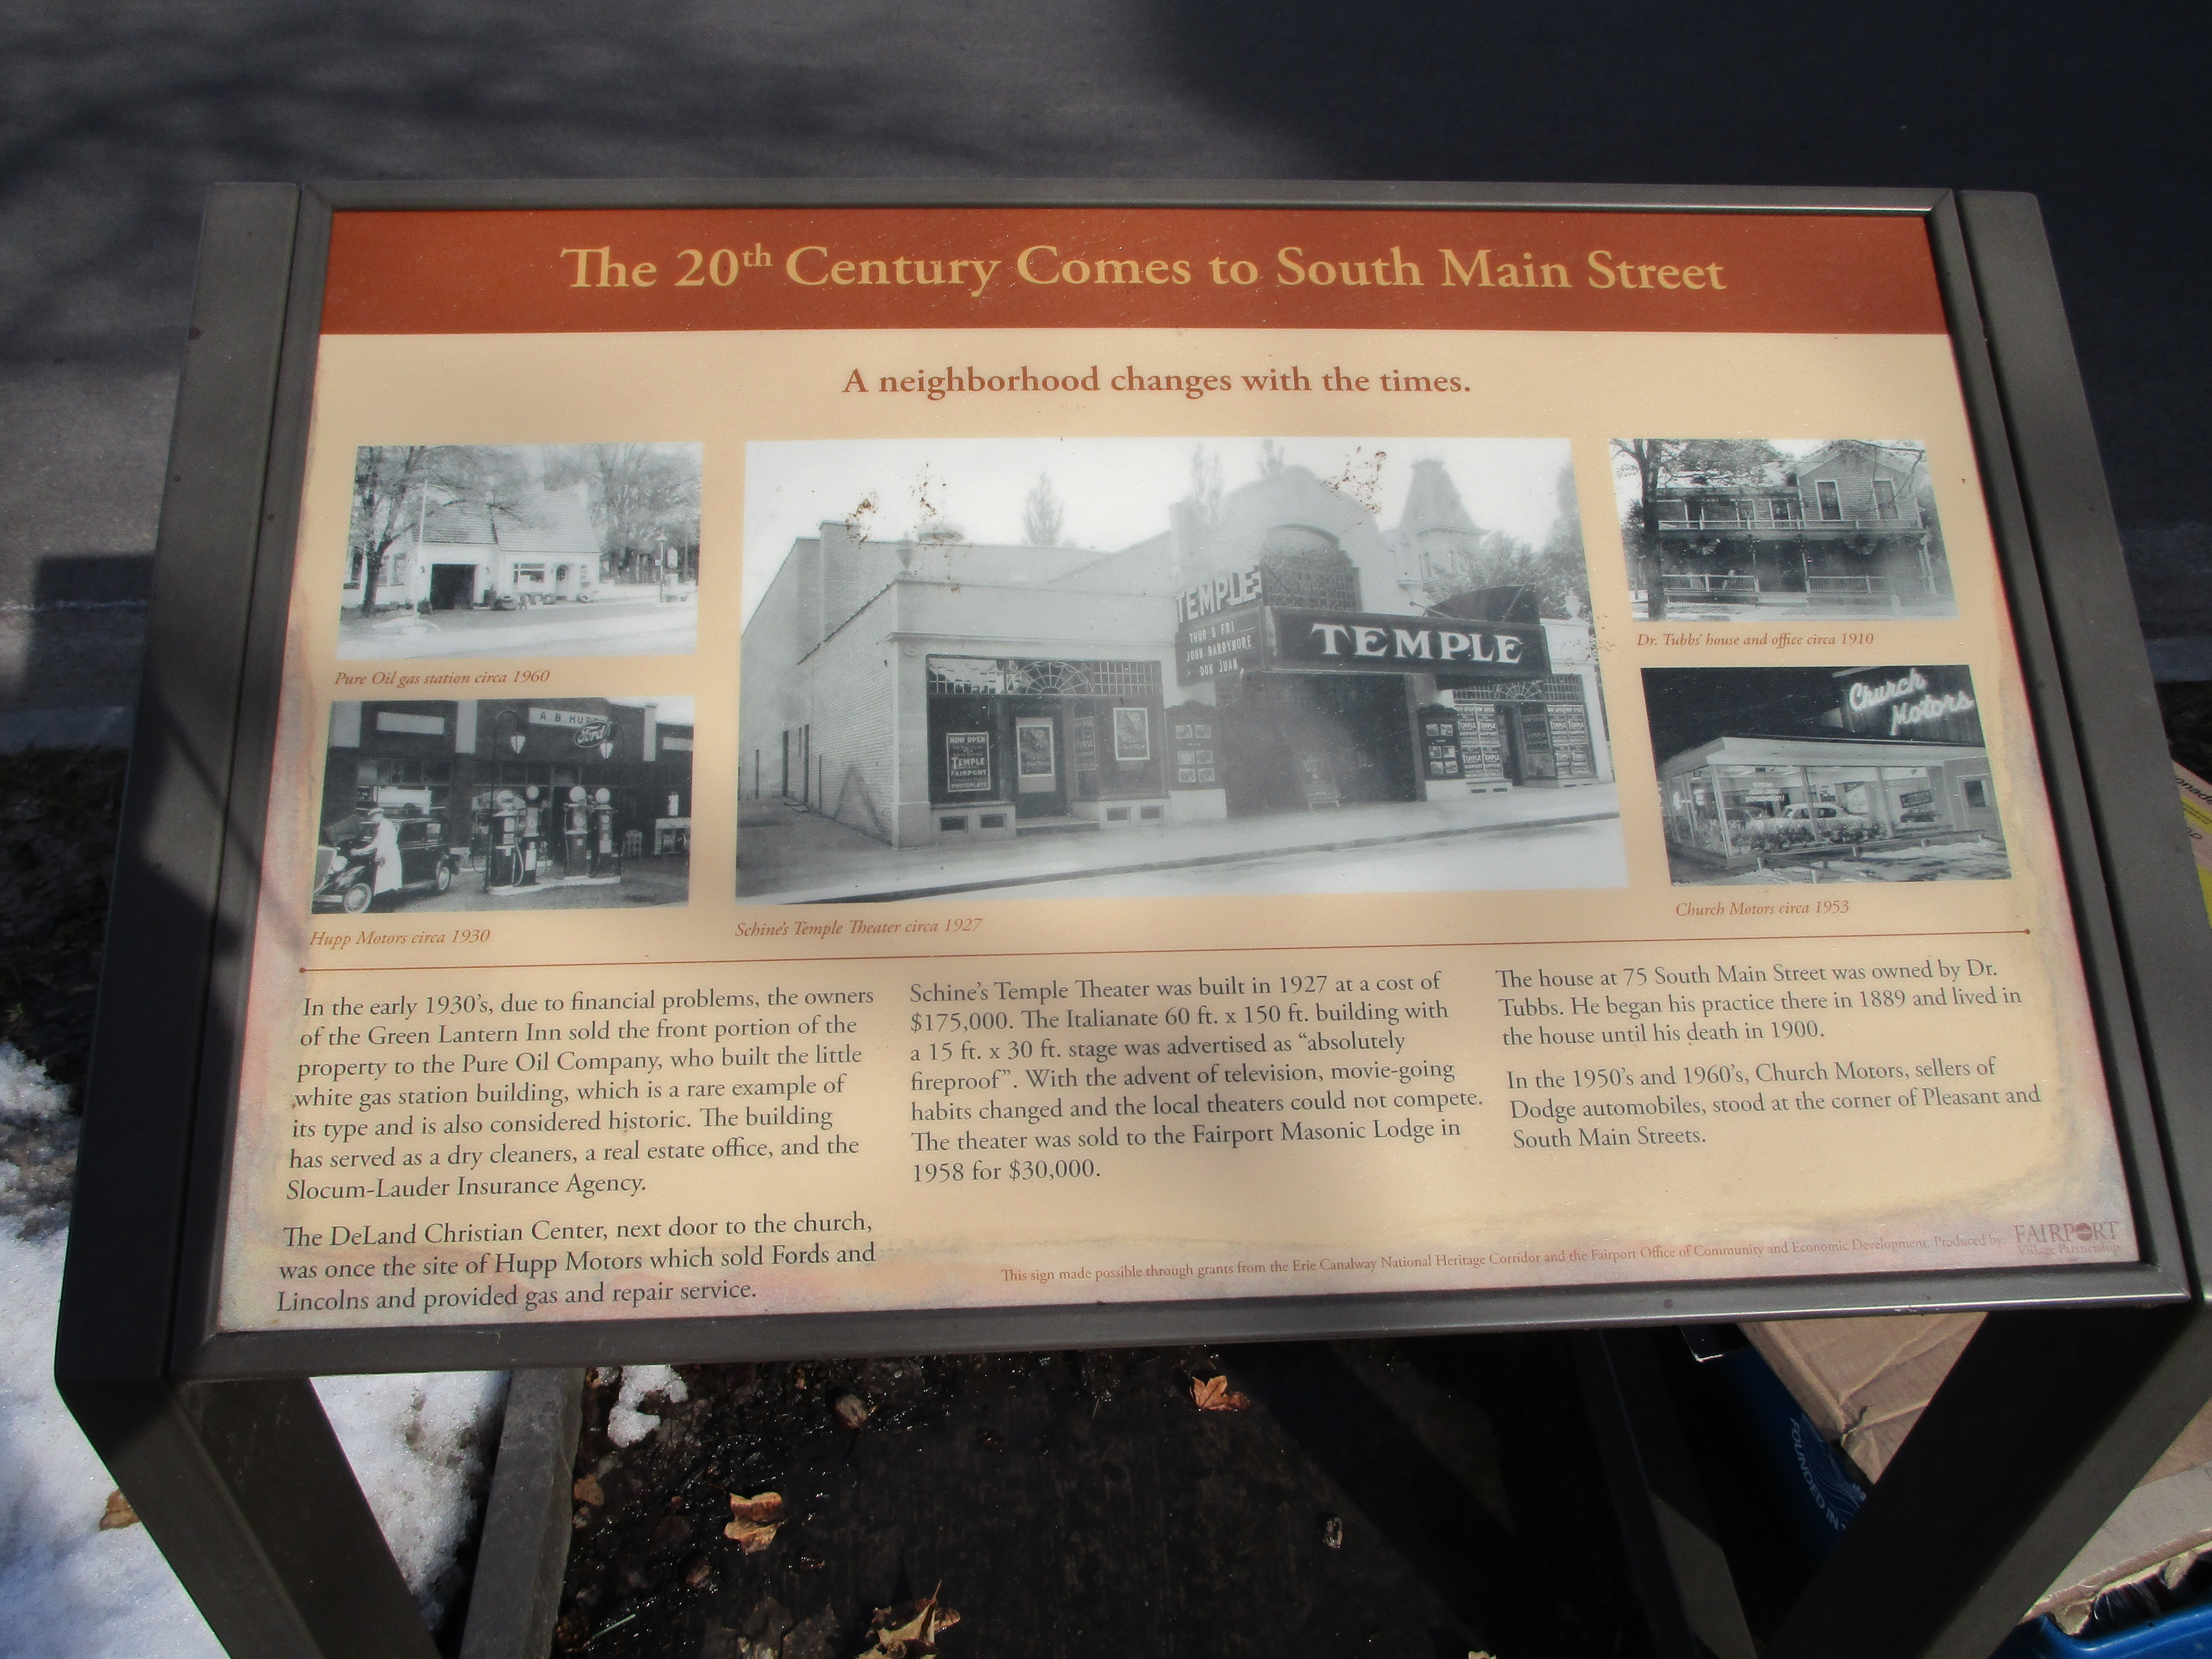 The 20th Century Comes to South Main Street Marker